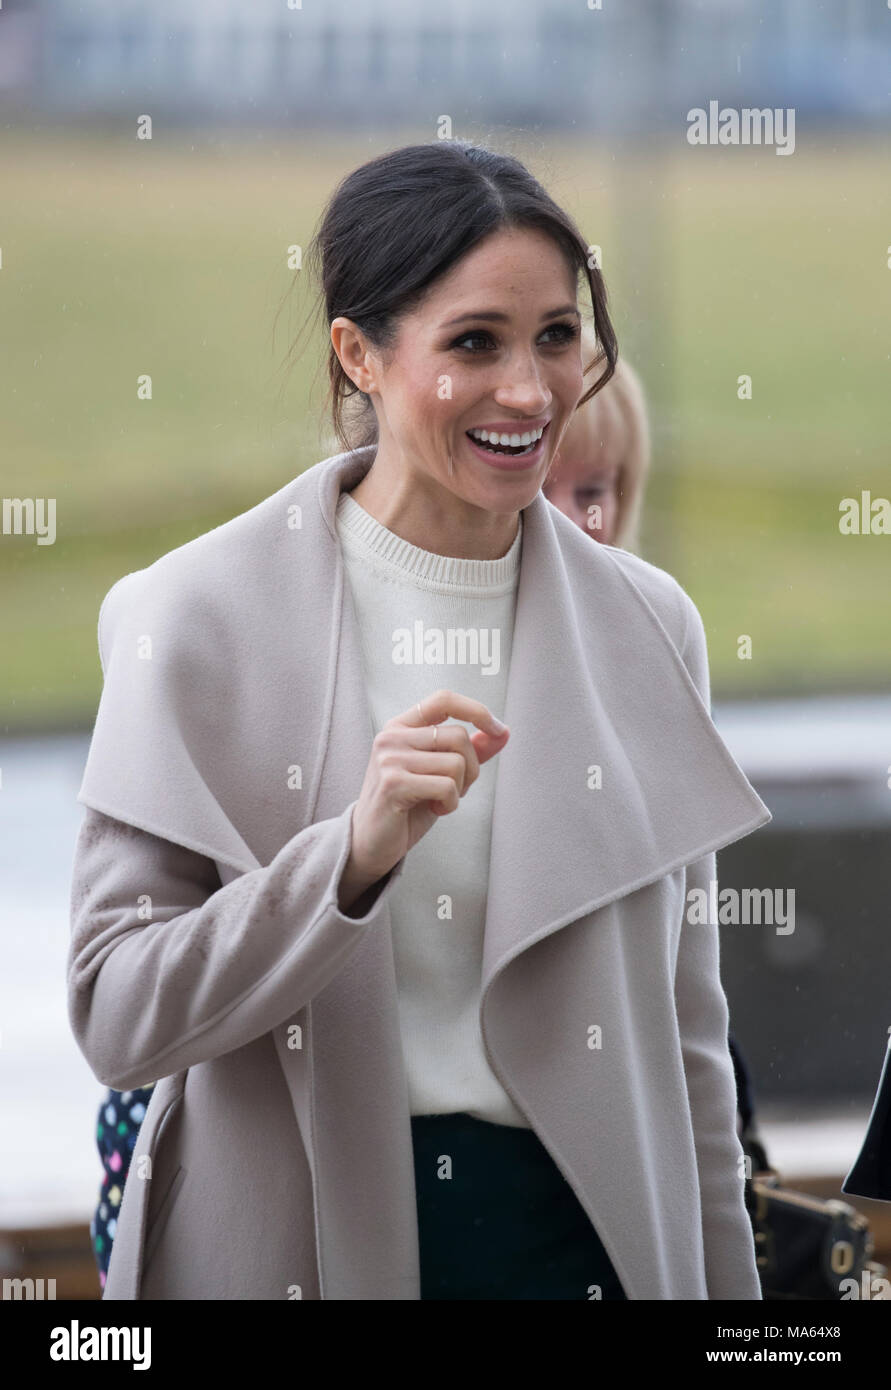 23rd March 2018 Belfast UK Britain's Prince Harry and his fiancee Meghan Markle on a visit to Belfast where they visited The Crown Liquor Saloon. - Stock Image